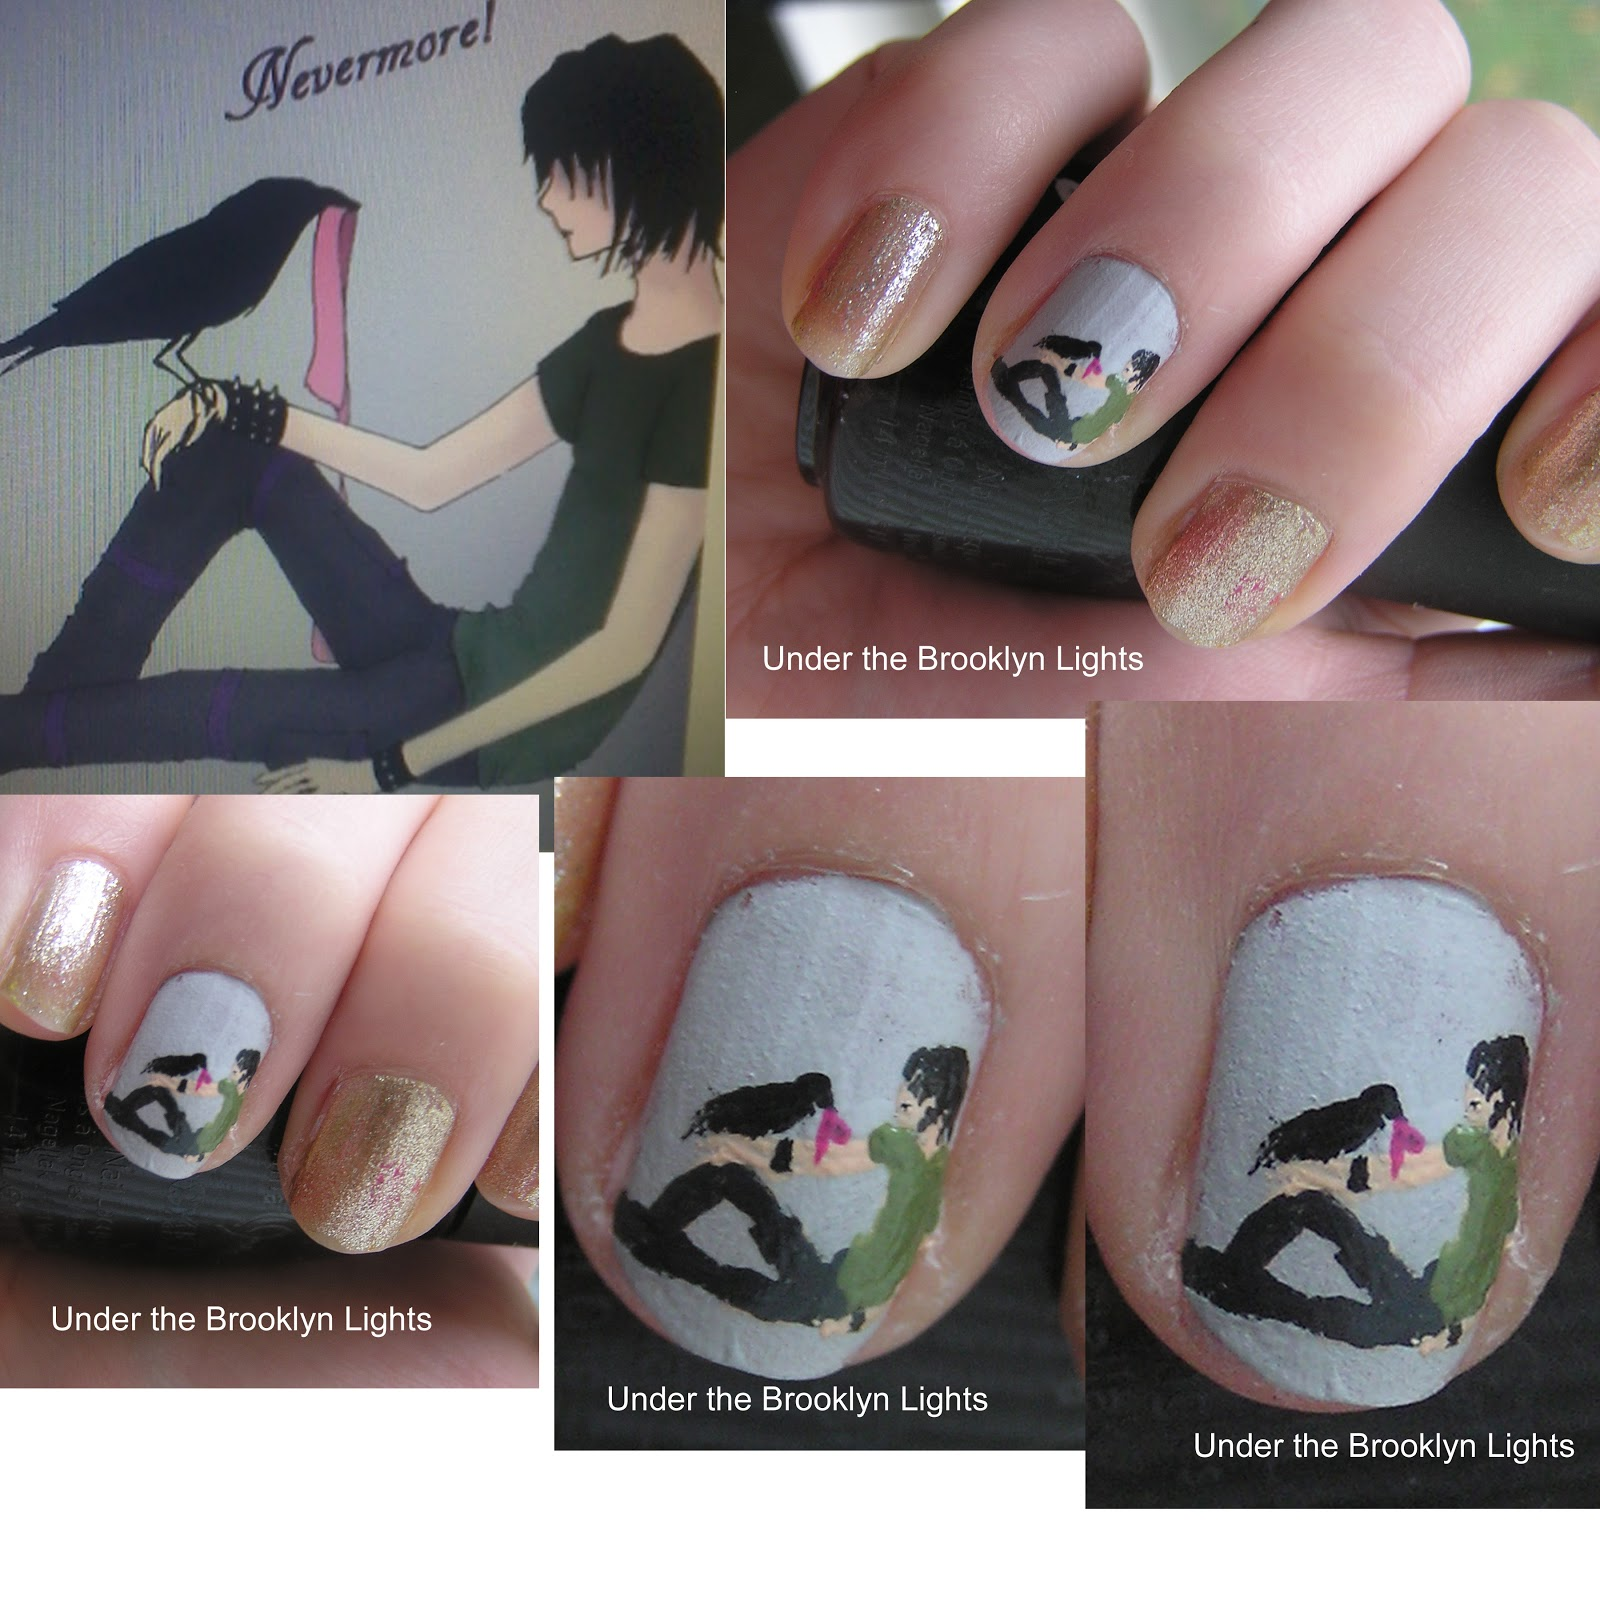 Under the Brooklyn Lights: Nevermore(Book) Inspired nail art!